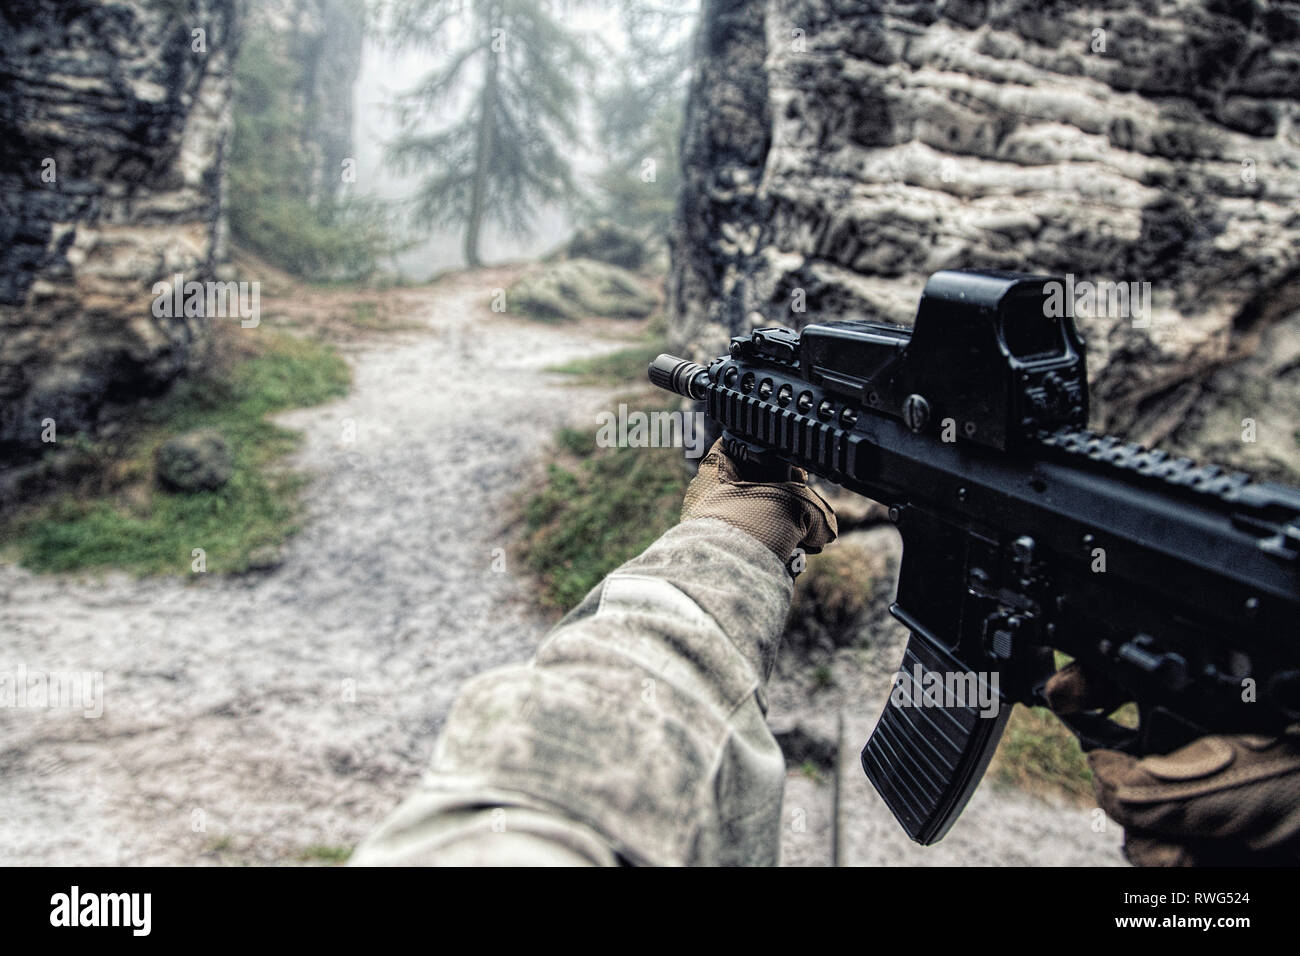 First person view of a private military contractor in action in the rocks. - Stock Image